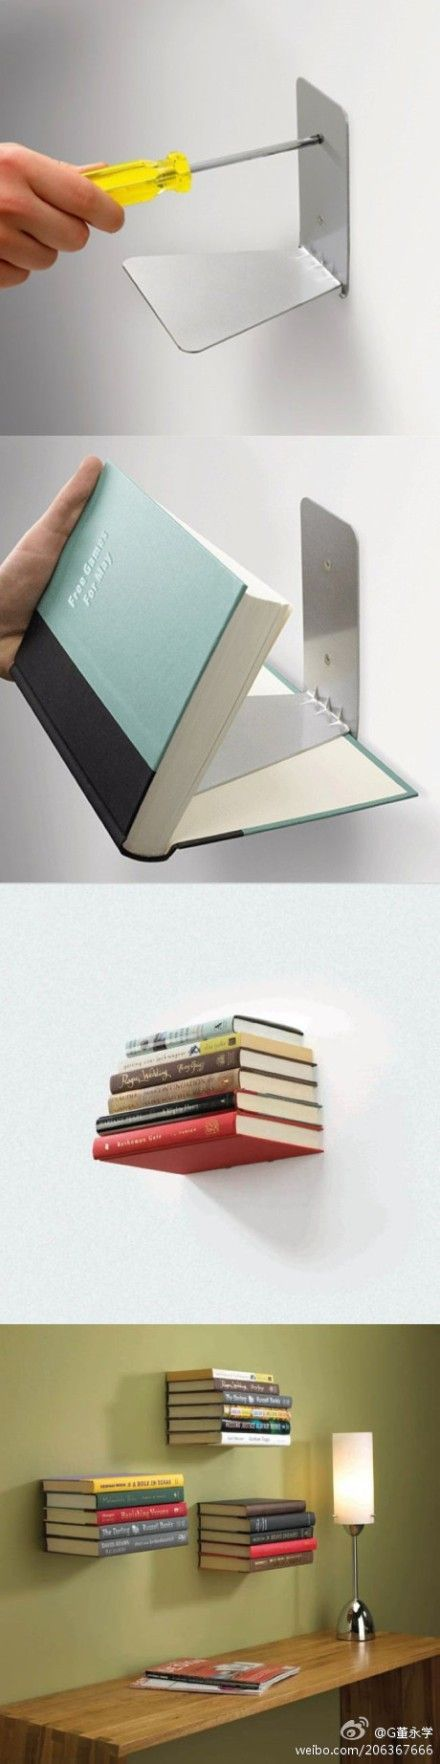 Floating Bookshelf Instructions